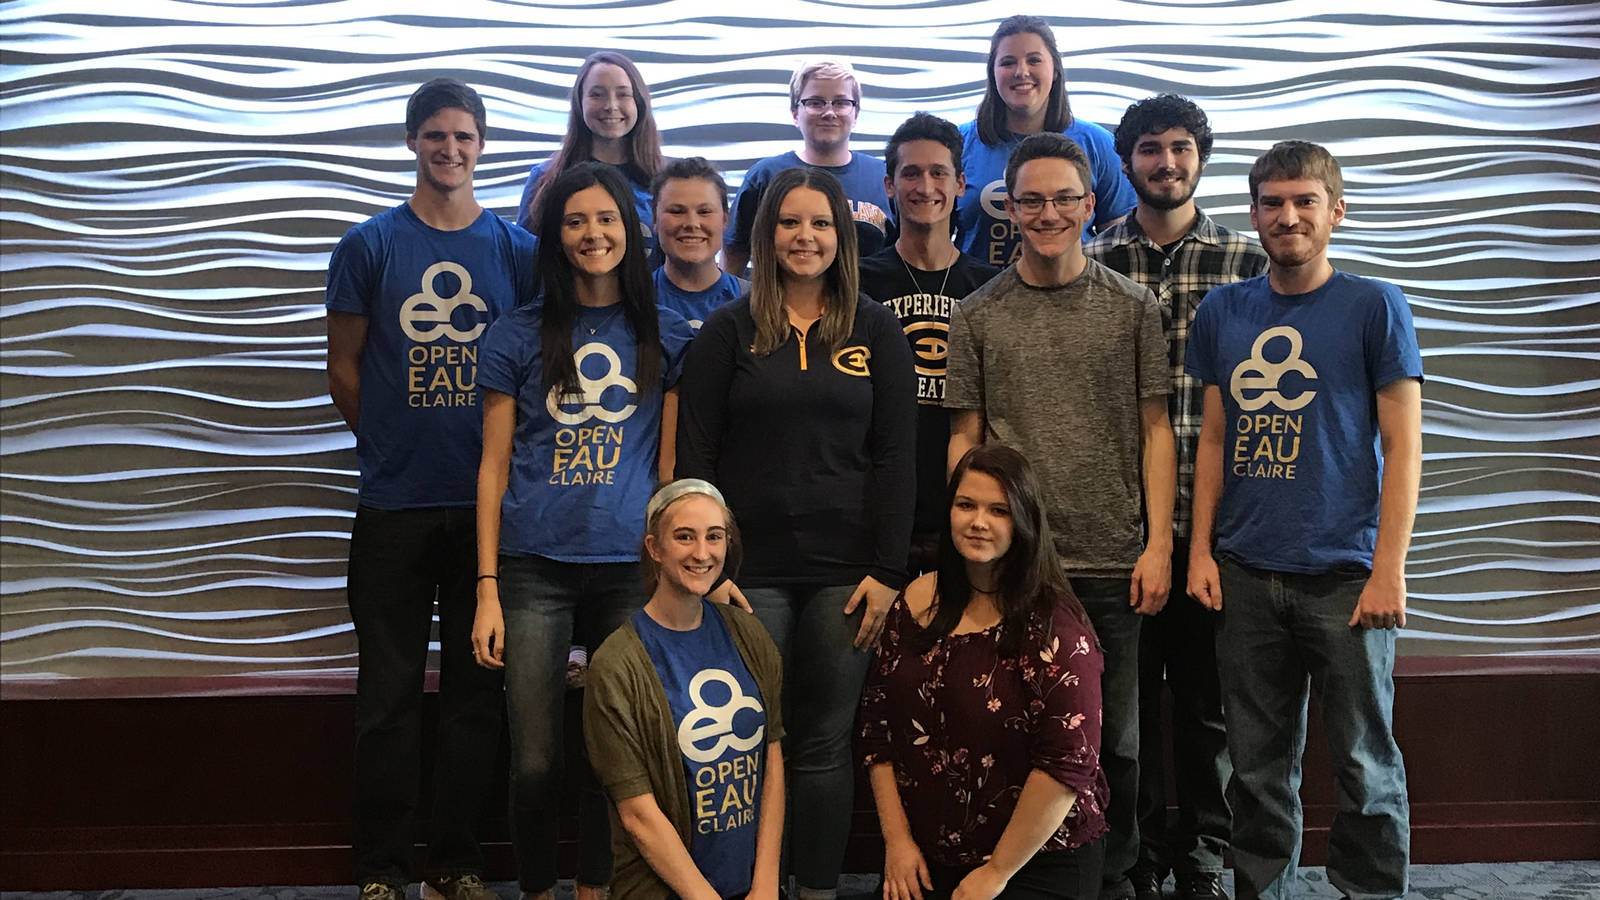 Picture of the Open Eau Claire team.